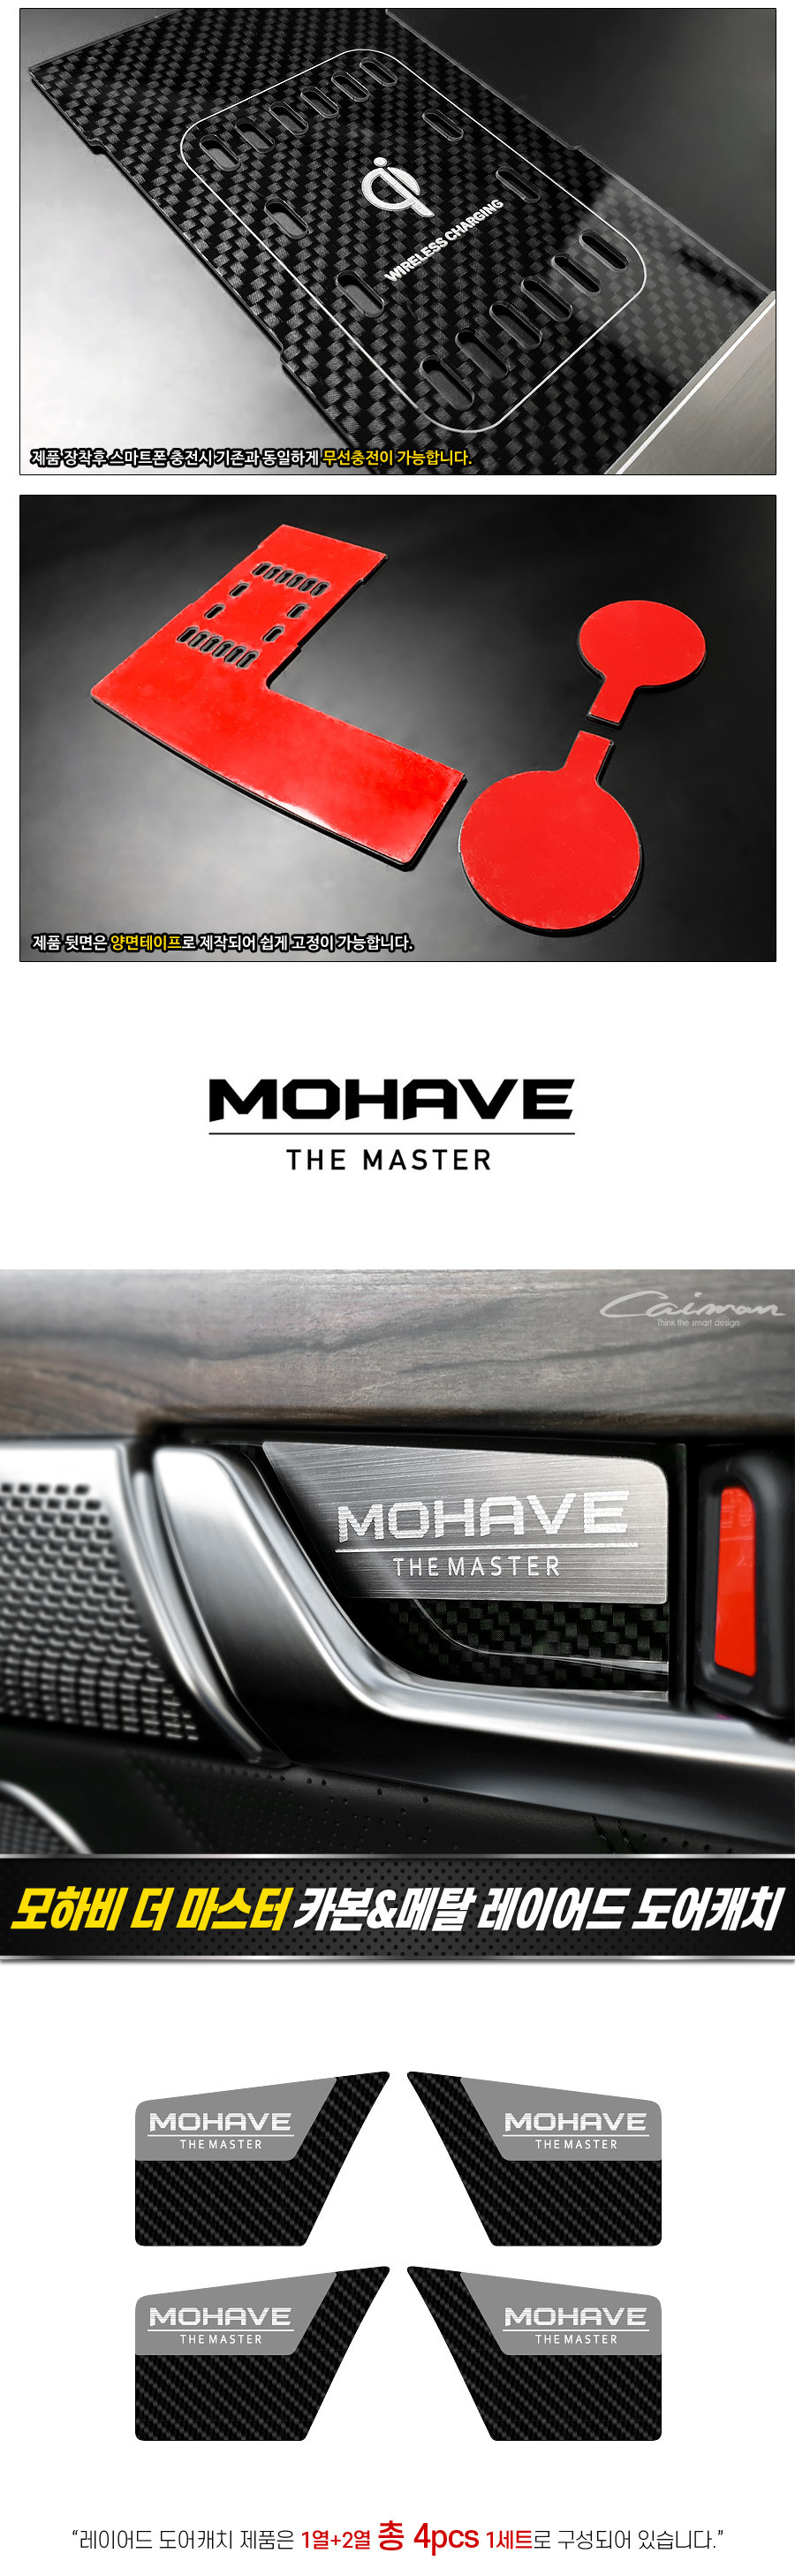 mohave-the-master-layered-cup-door_05.jpg